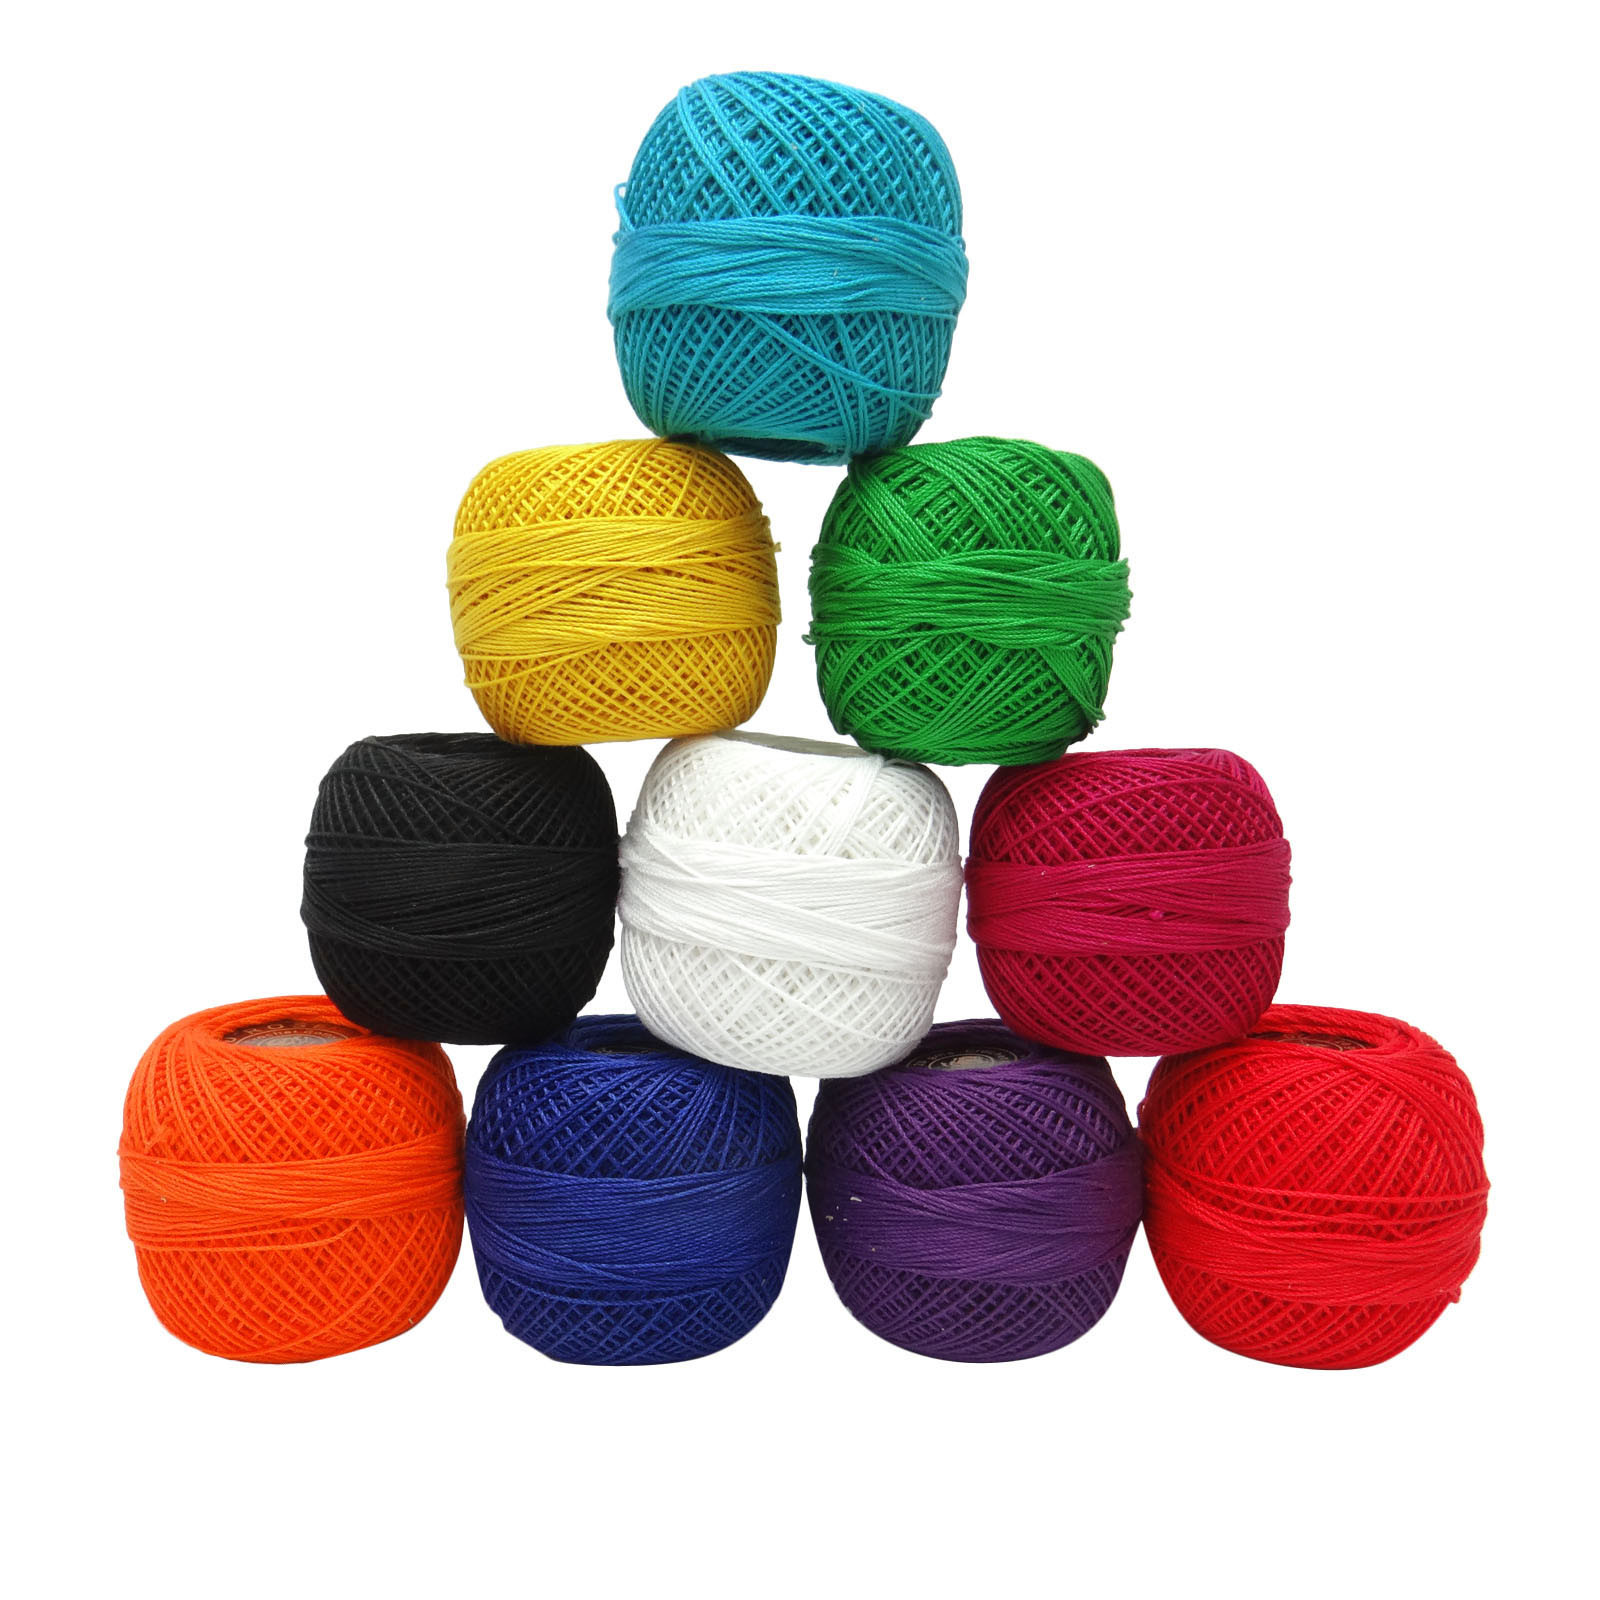 Elegant Thread Mercer Cotton Crochet Thread Yarn Craft Crochet Cotton Thread Of New 50 Pics Crochet Cotton Thread